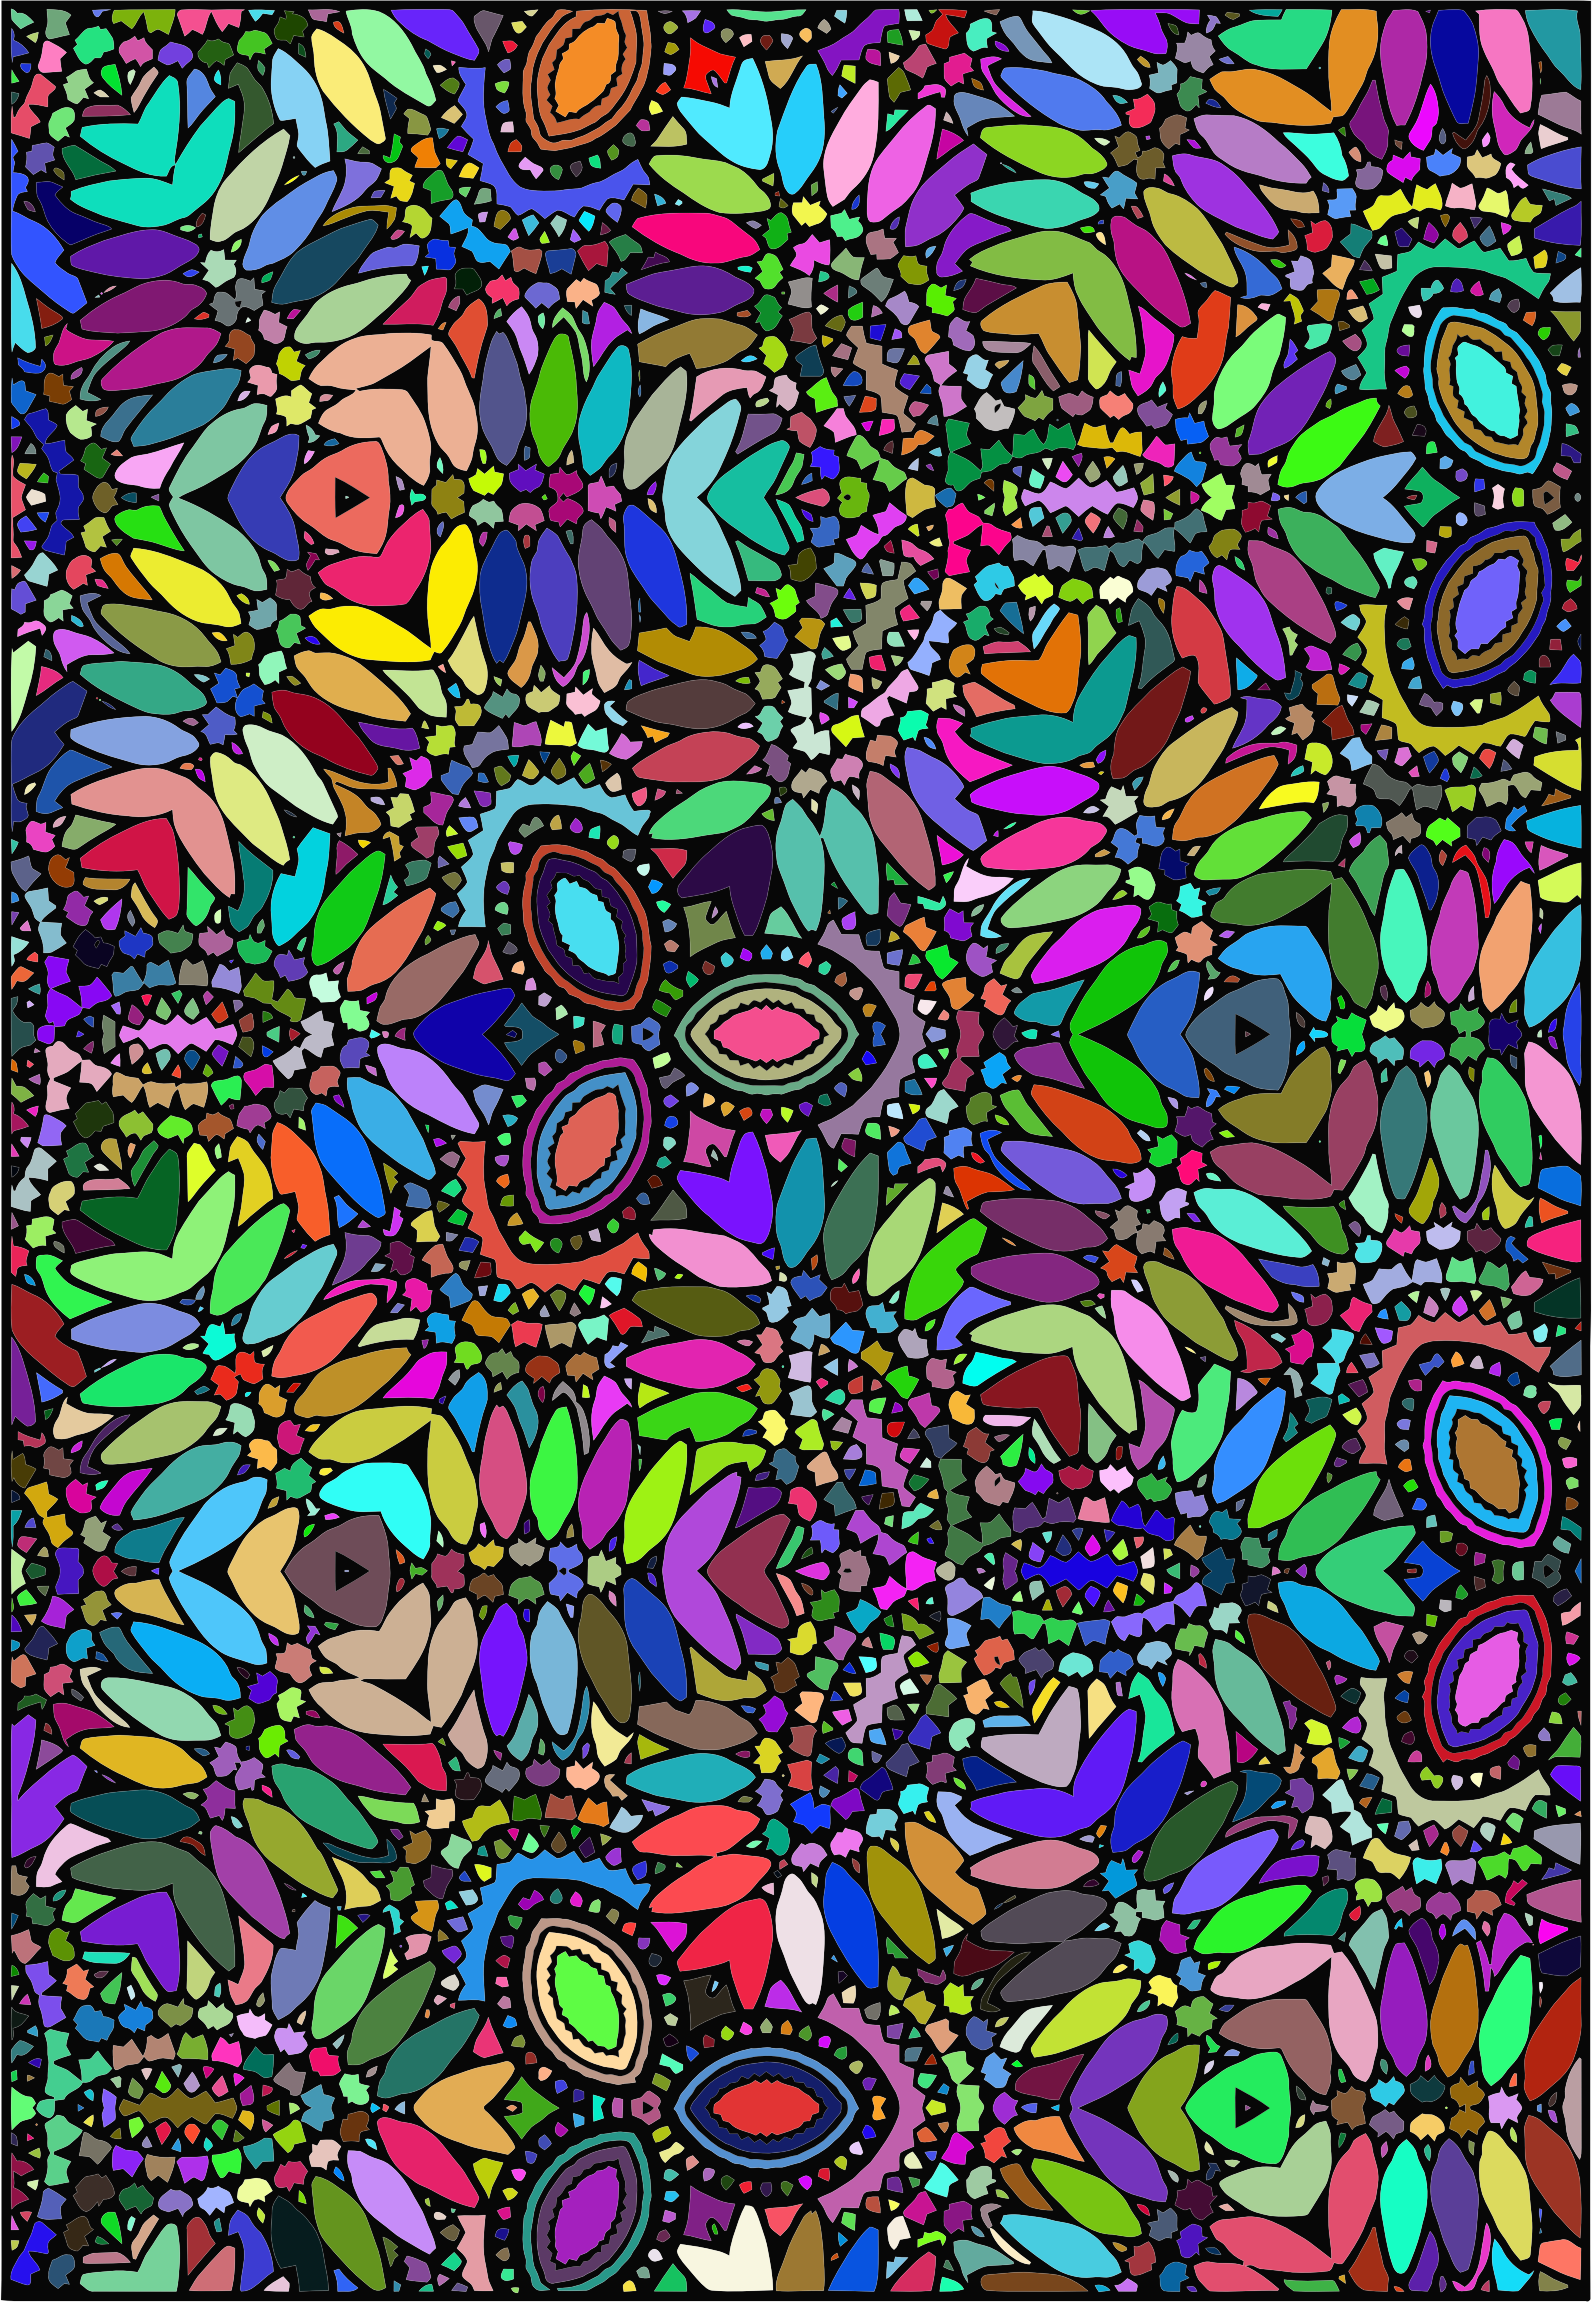 Prismatic Abstract Floral Coloring Design by GDJ